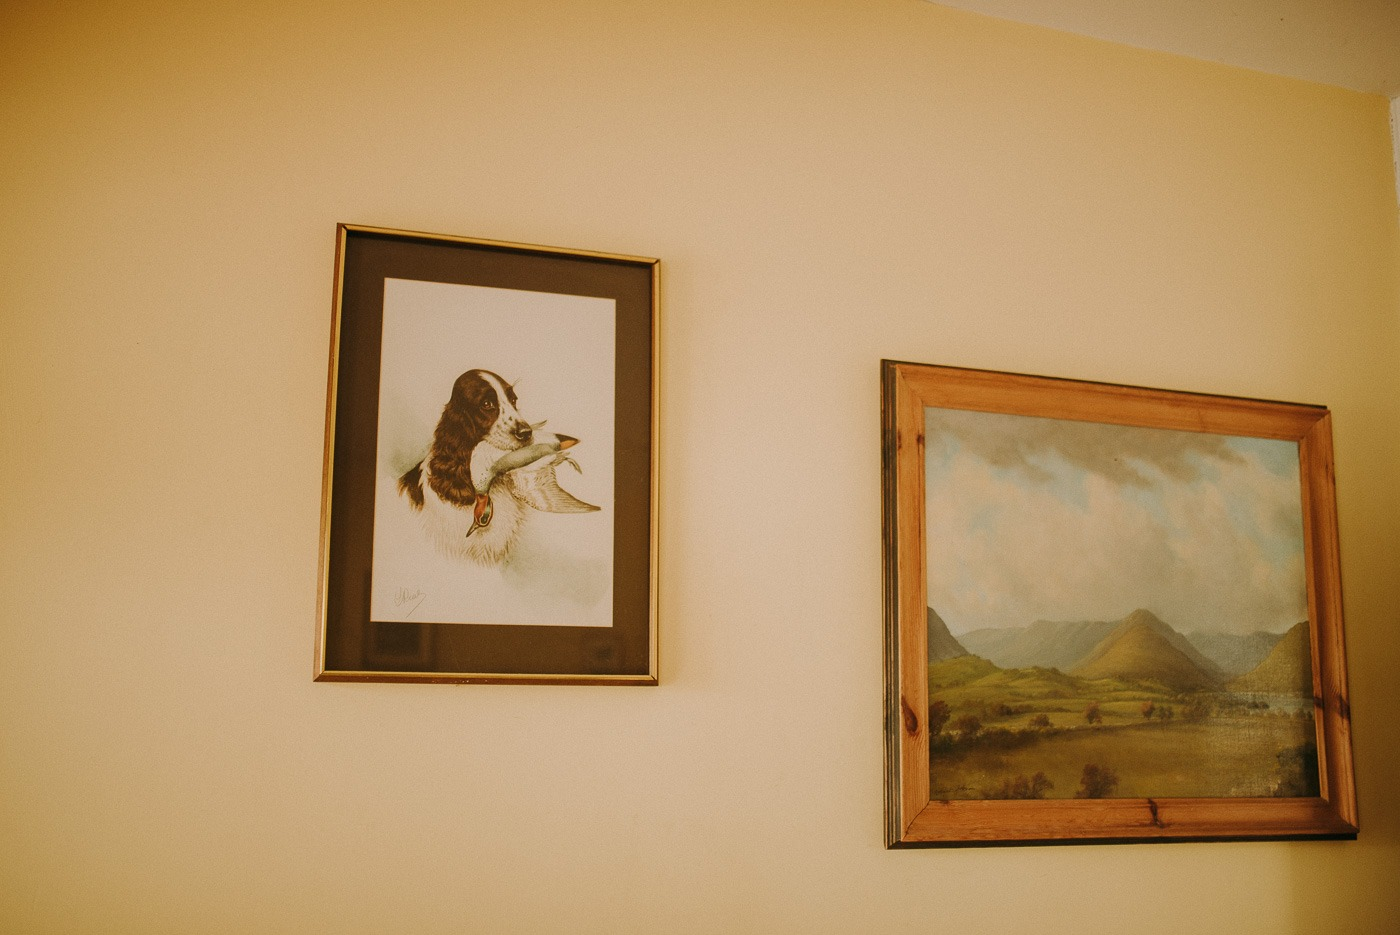 A painting hanging on a wall